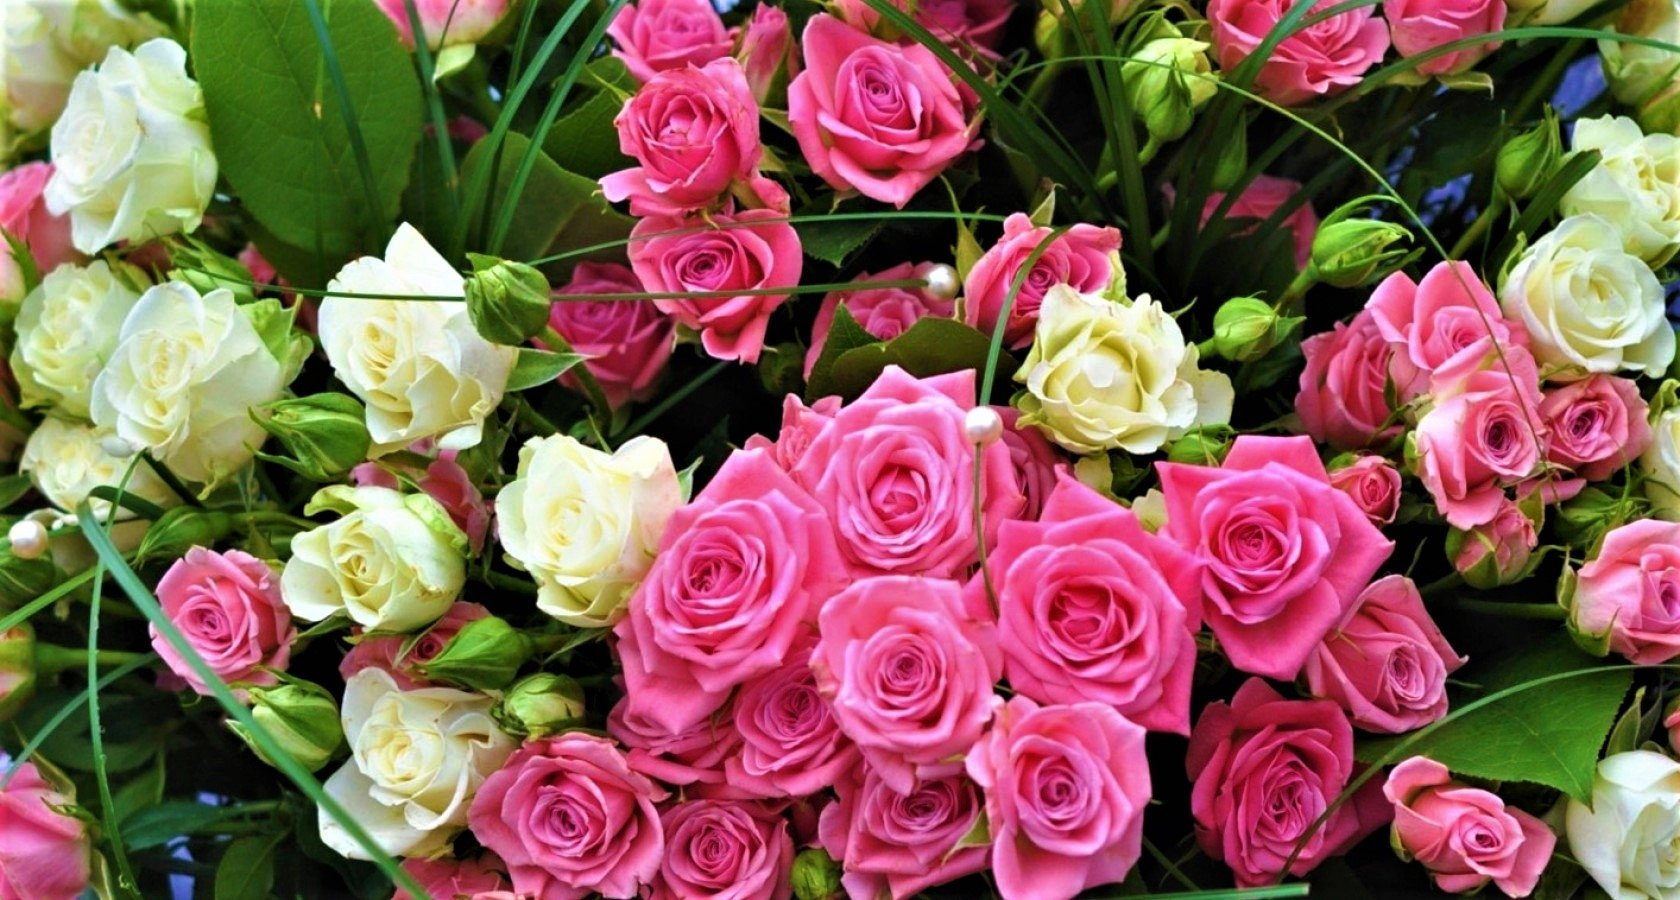 Pink And White Roses Wallpaper And Background Image 1680x900